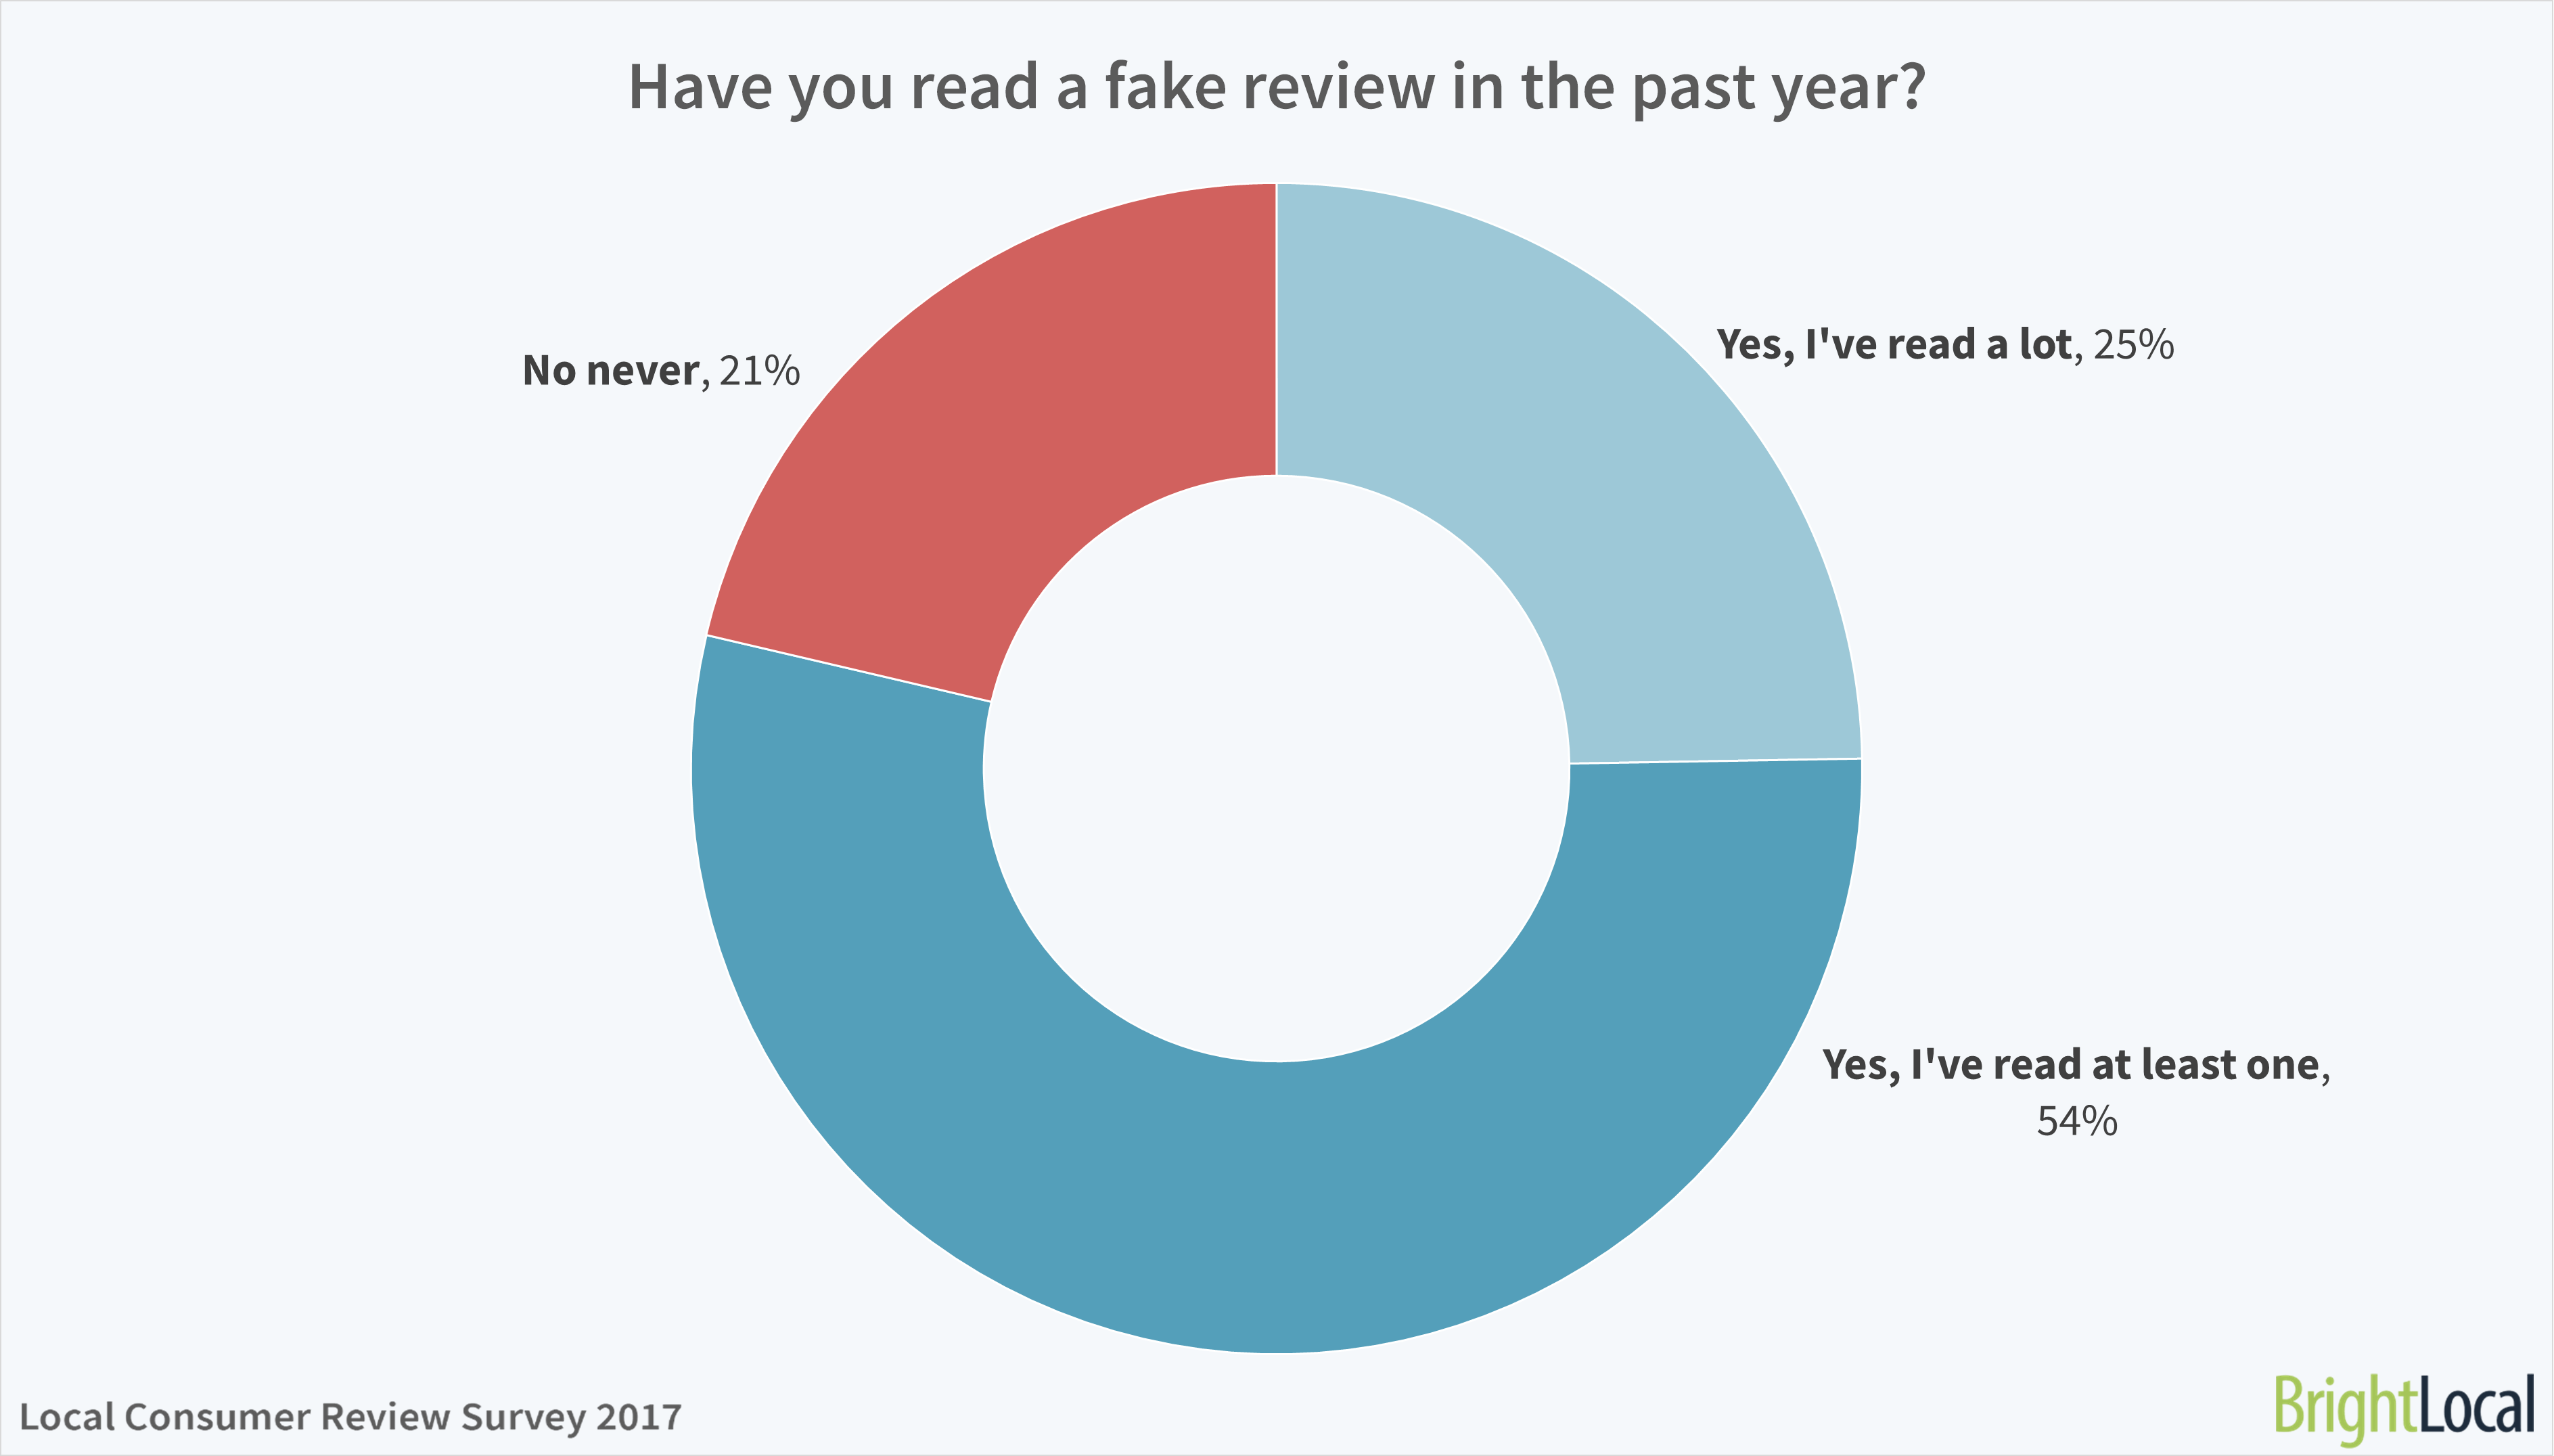 Have you read a fake review in the past year? BrightLocal Consumer Review Survey 2017